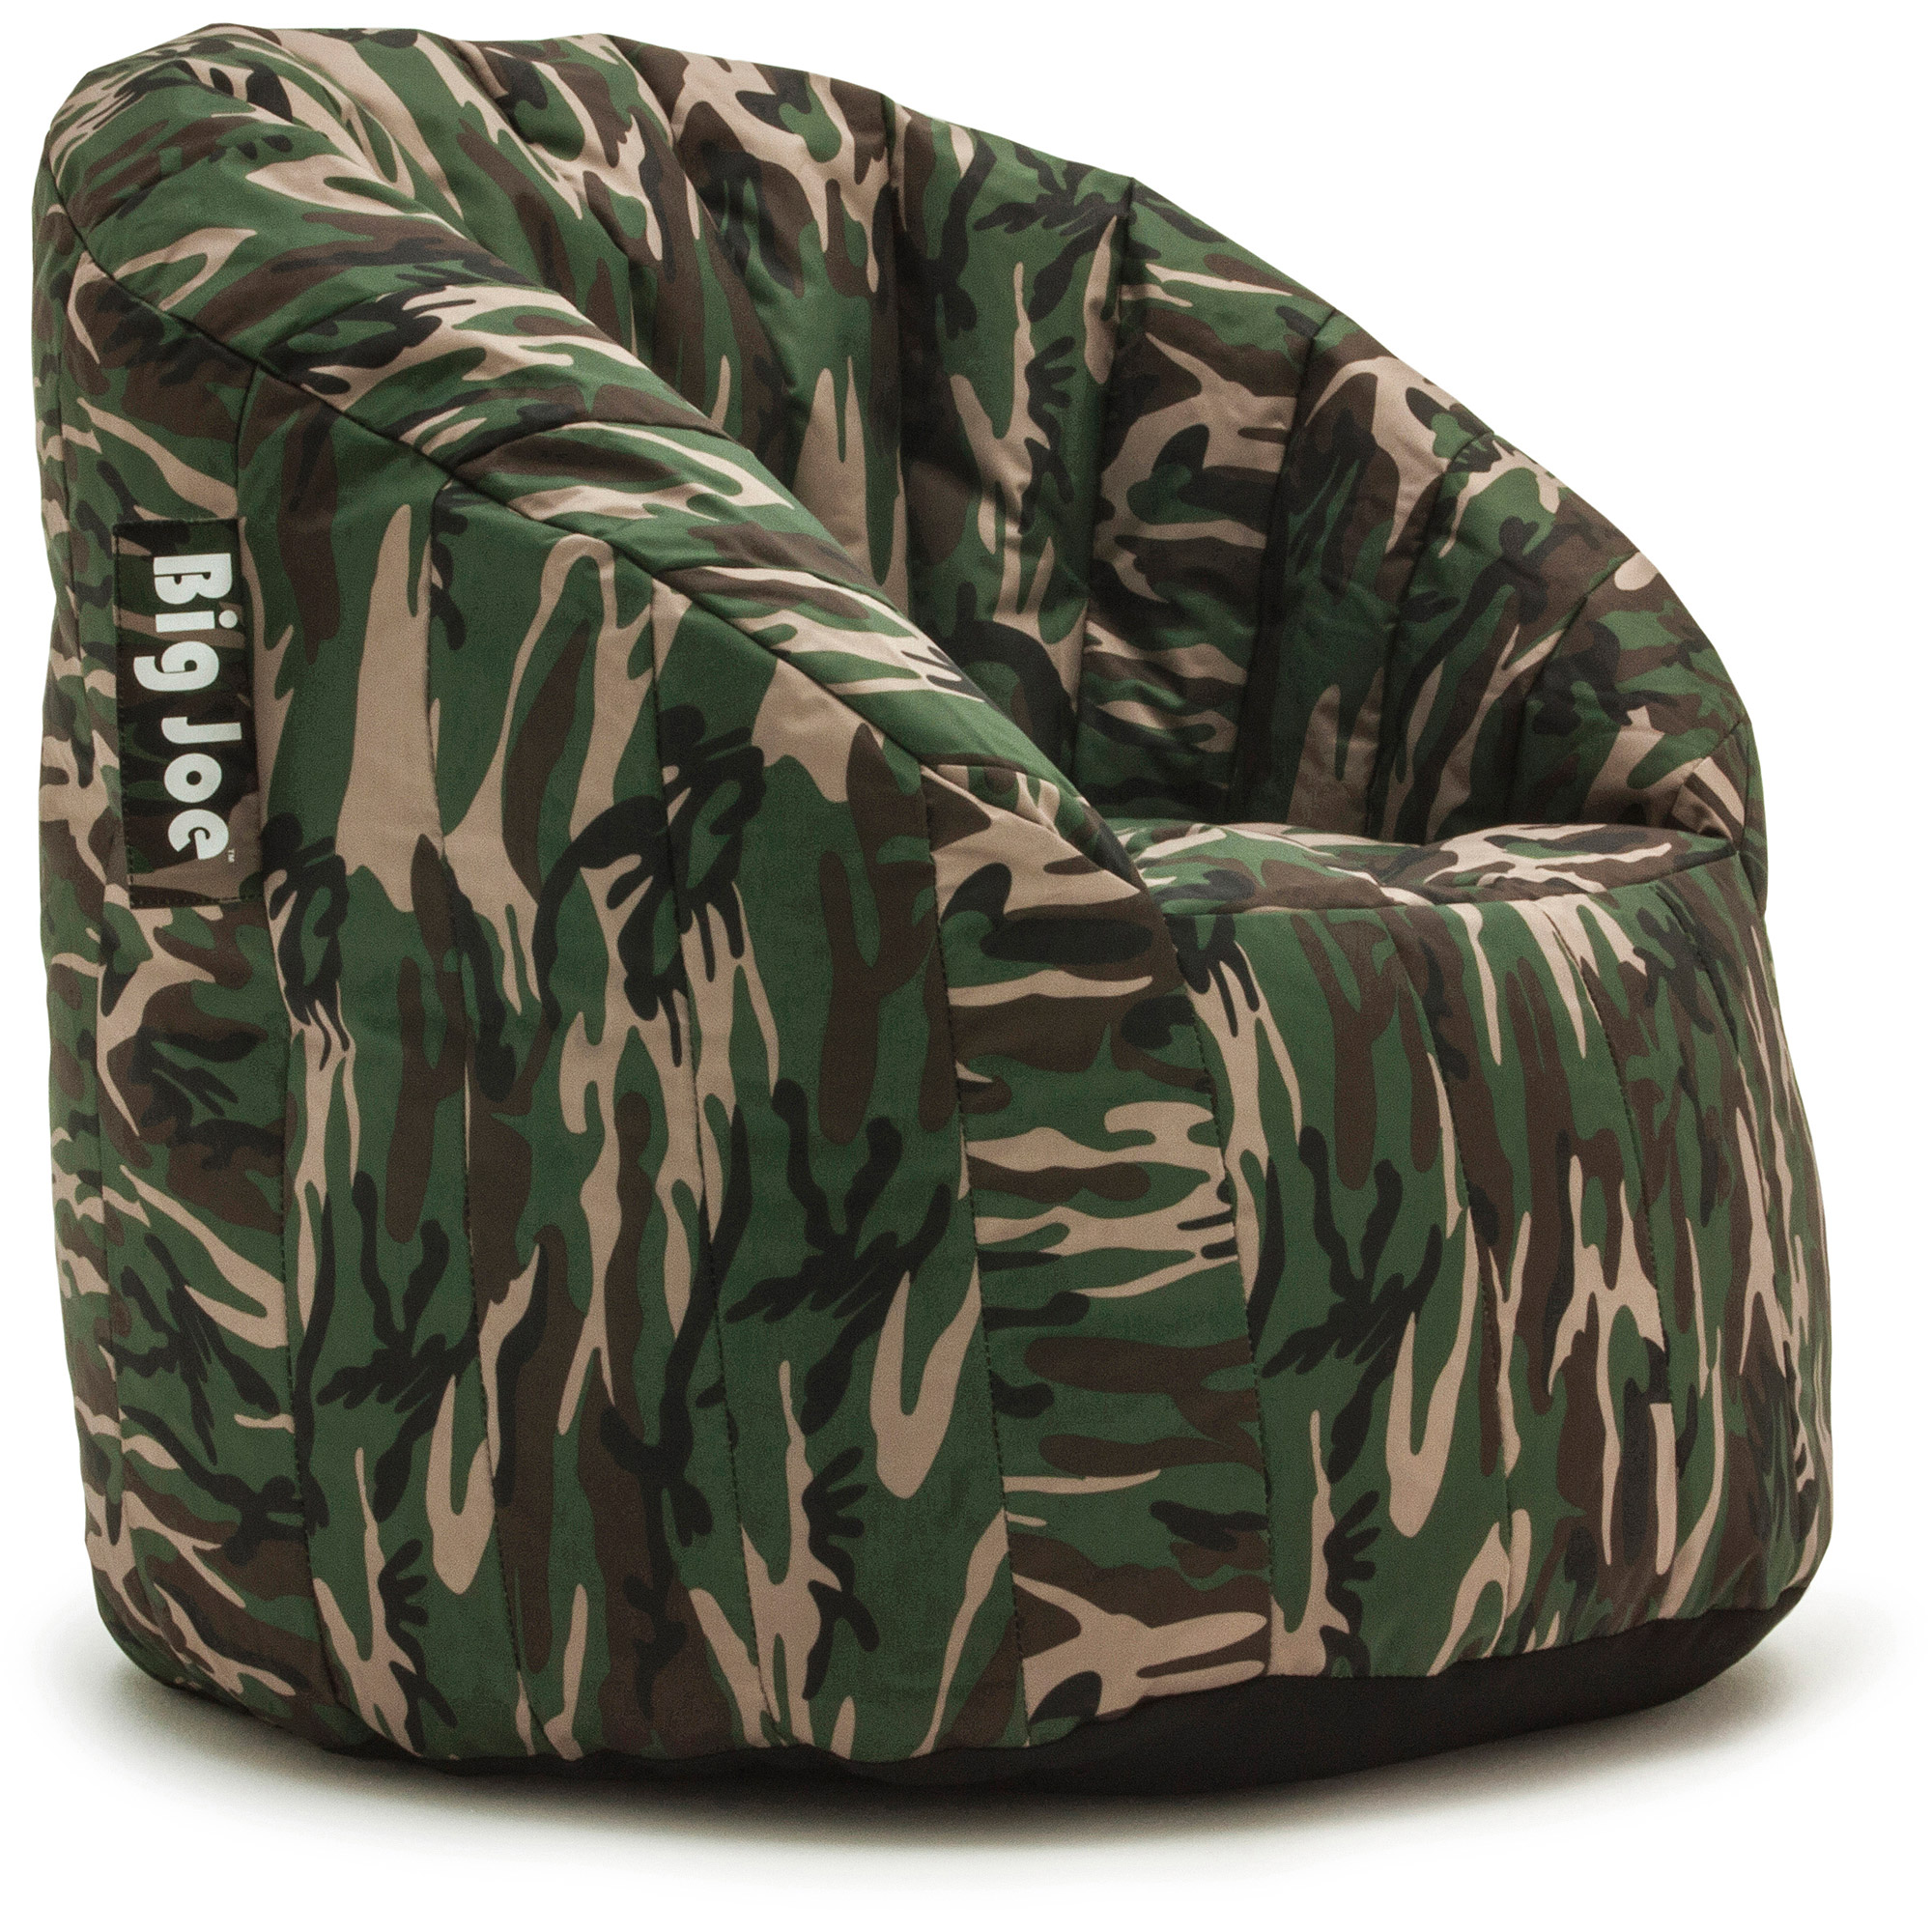 Big Joe Lumen Chair, Green Camo